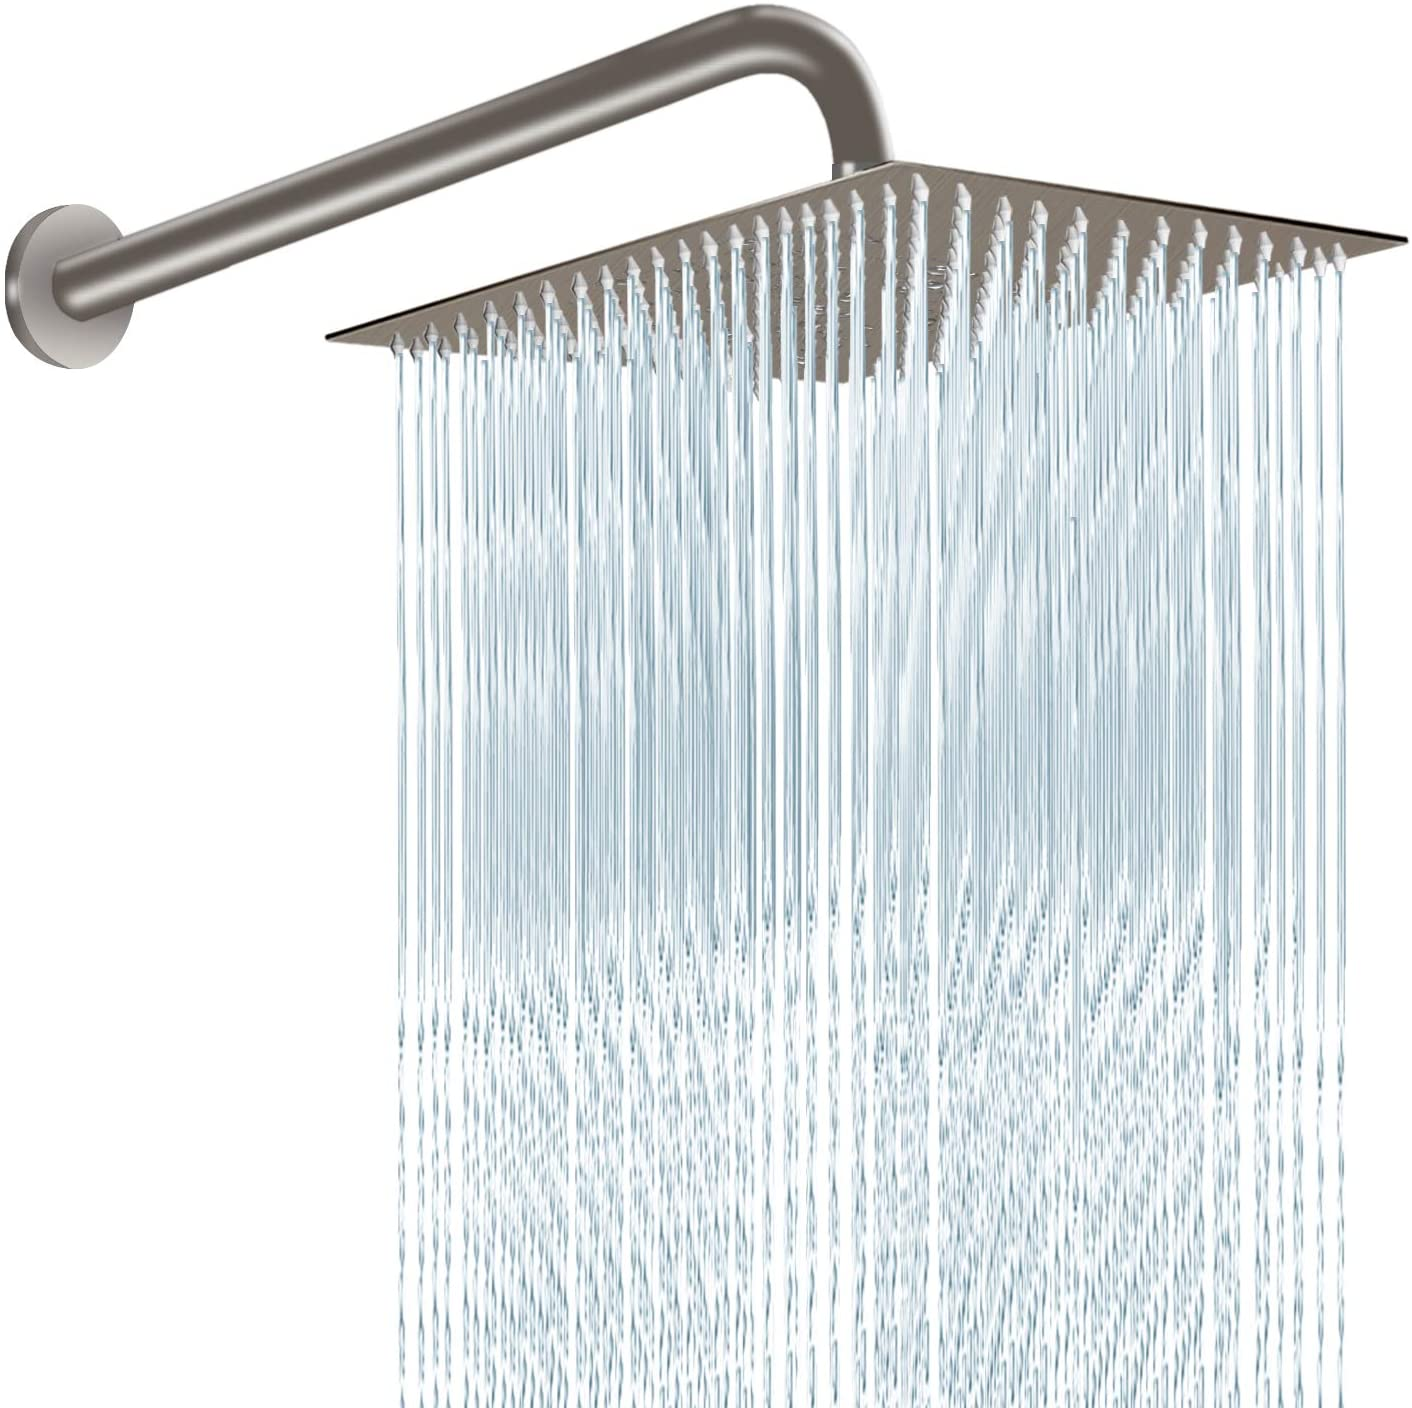 12 Inch Shower Head with 15 Inch Arm Brushed Nickel